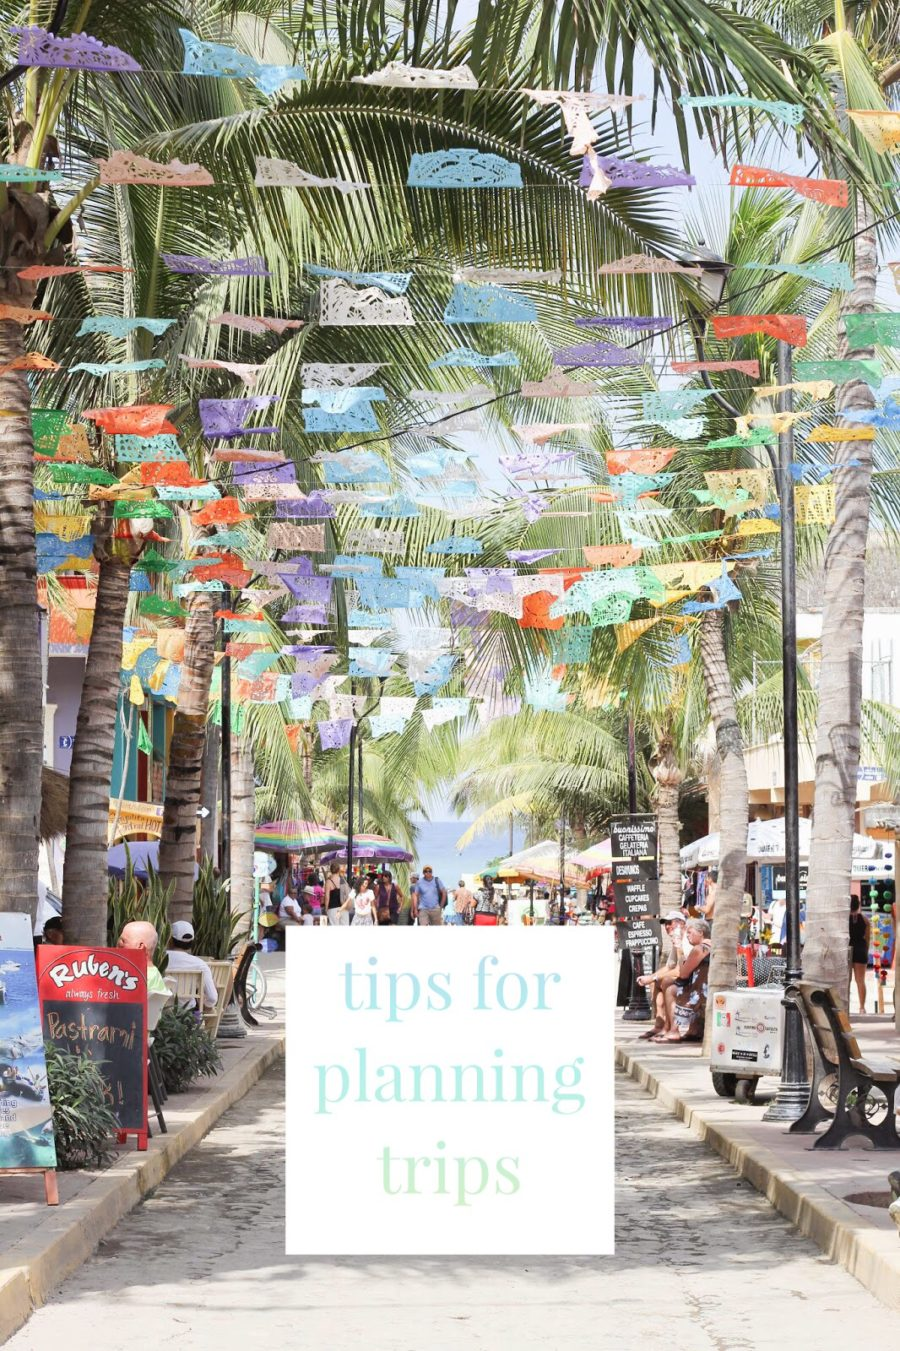 tips for planning trips